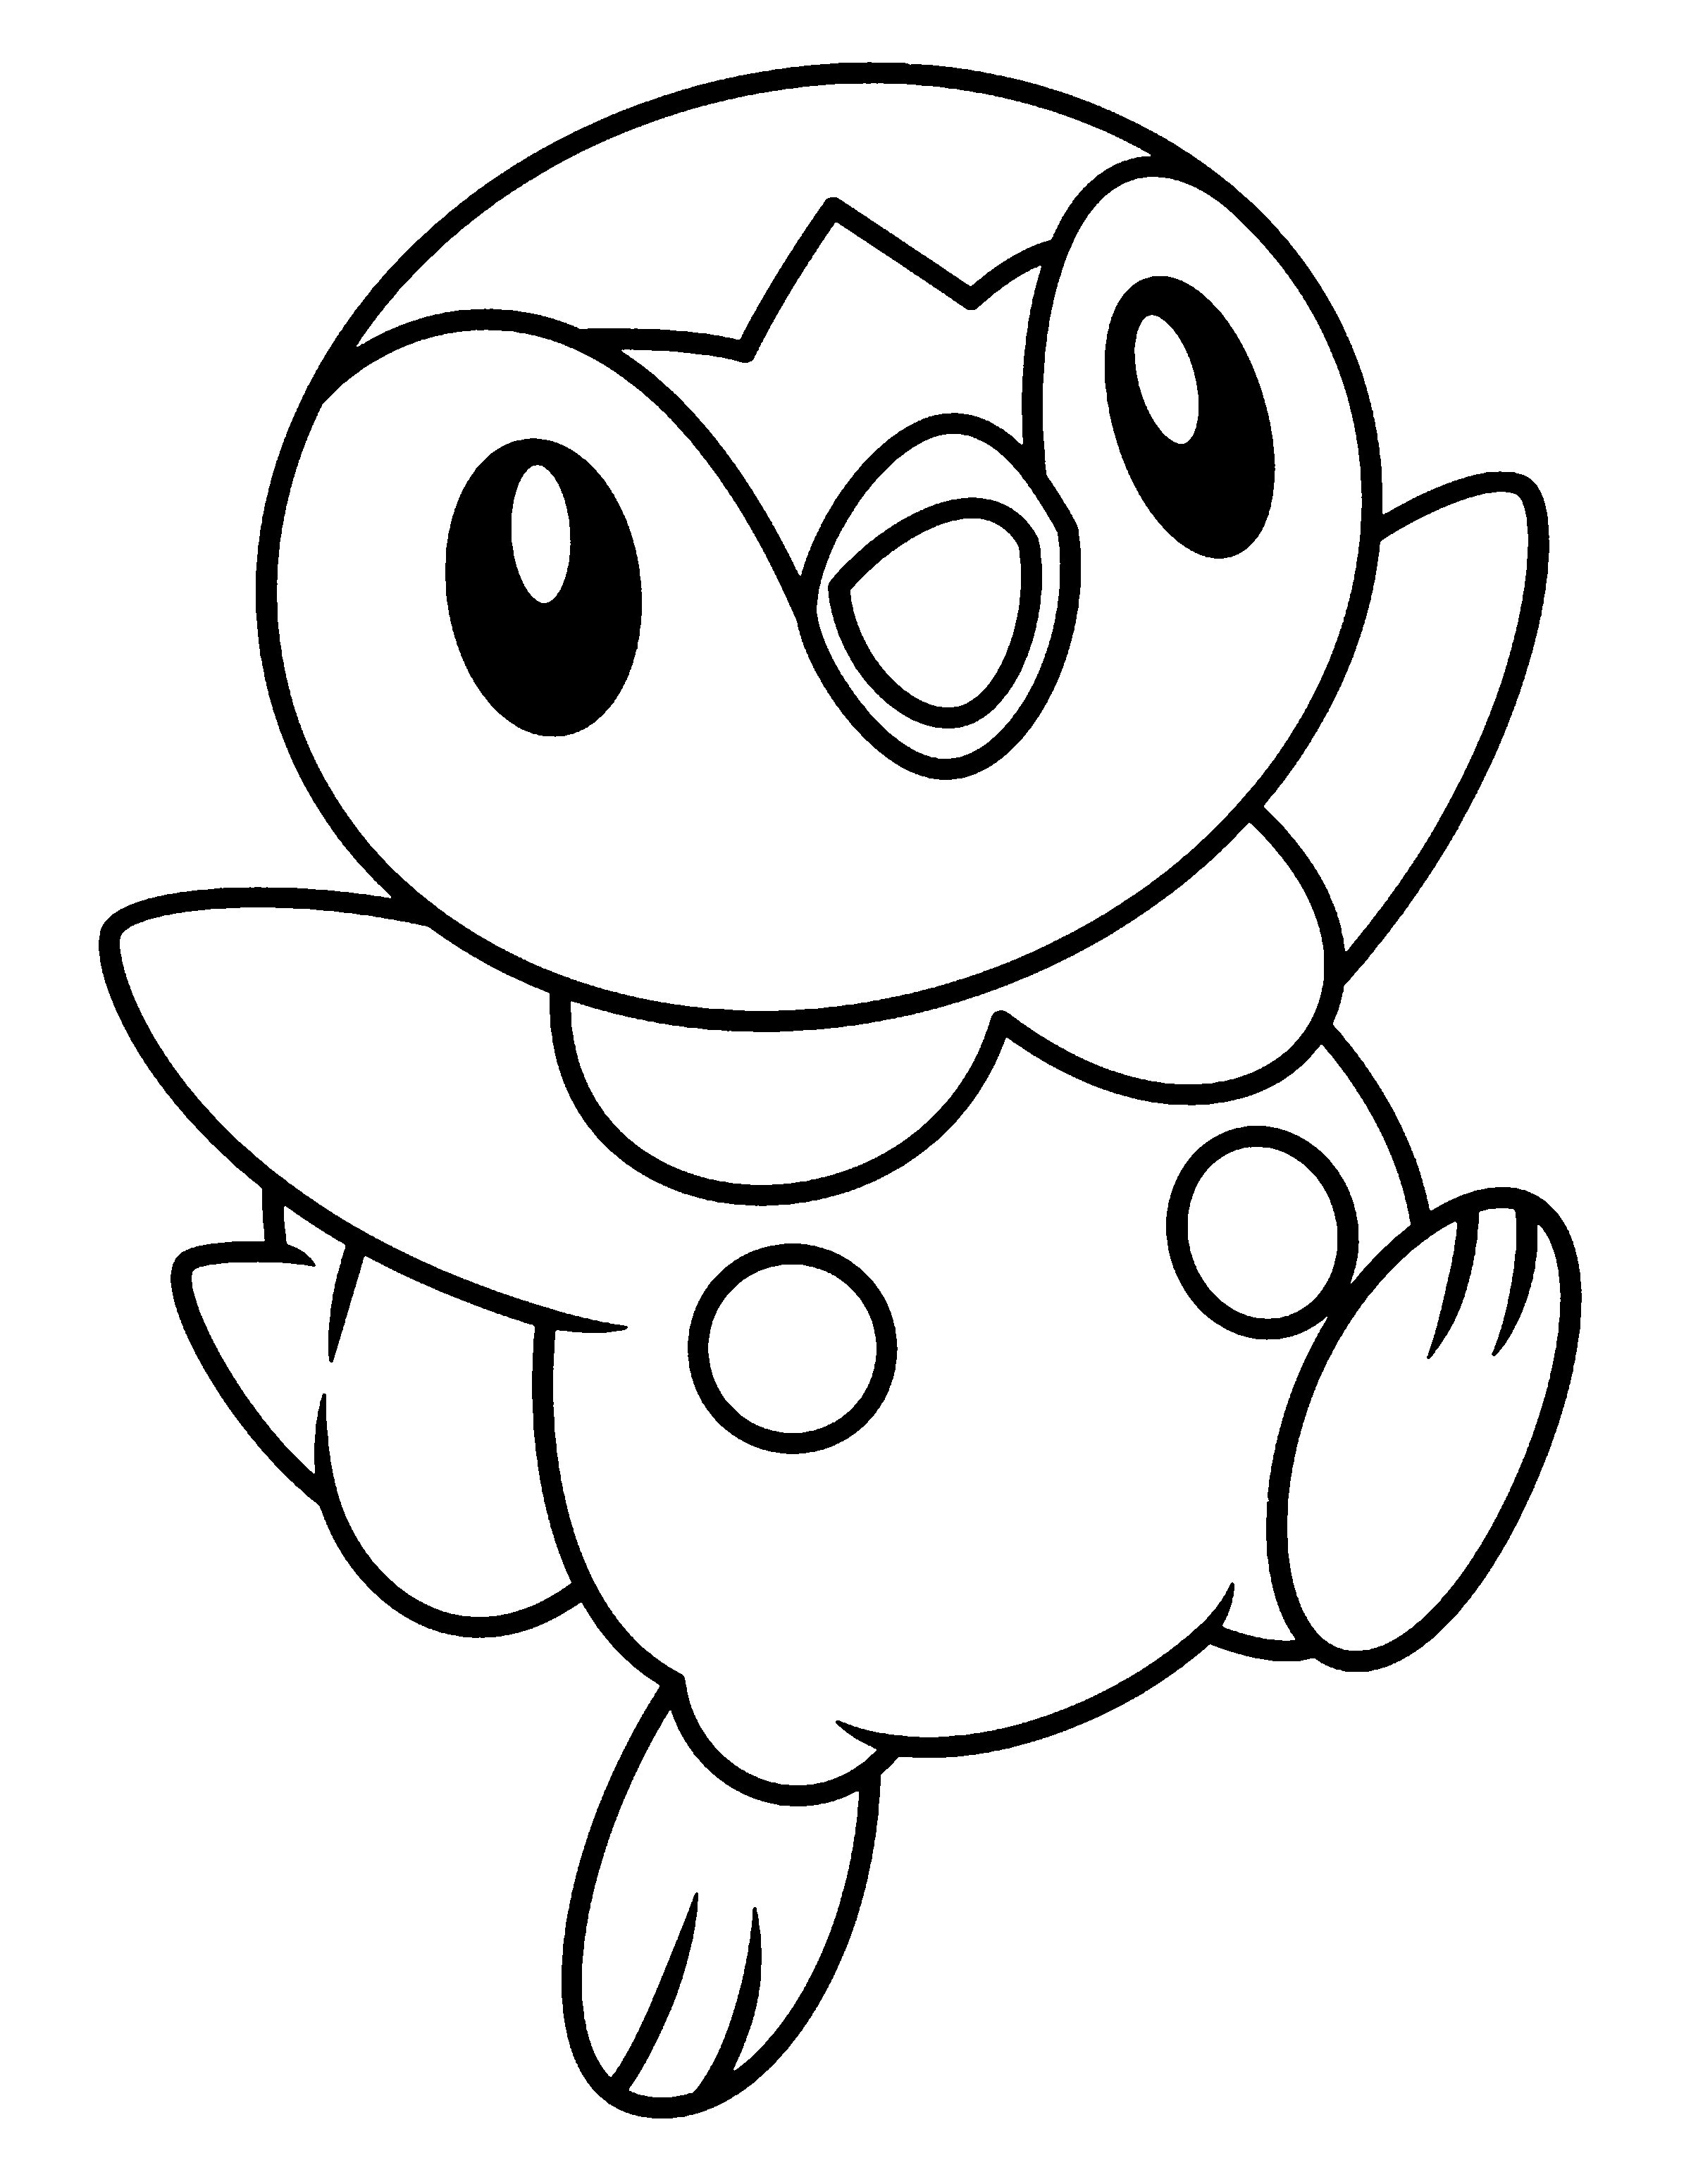 Coloring page tv series coloring page pokemon diamond for Tv coloring page